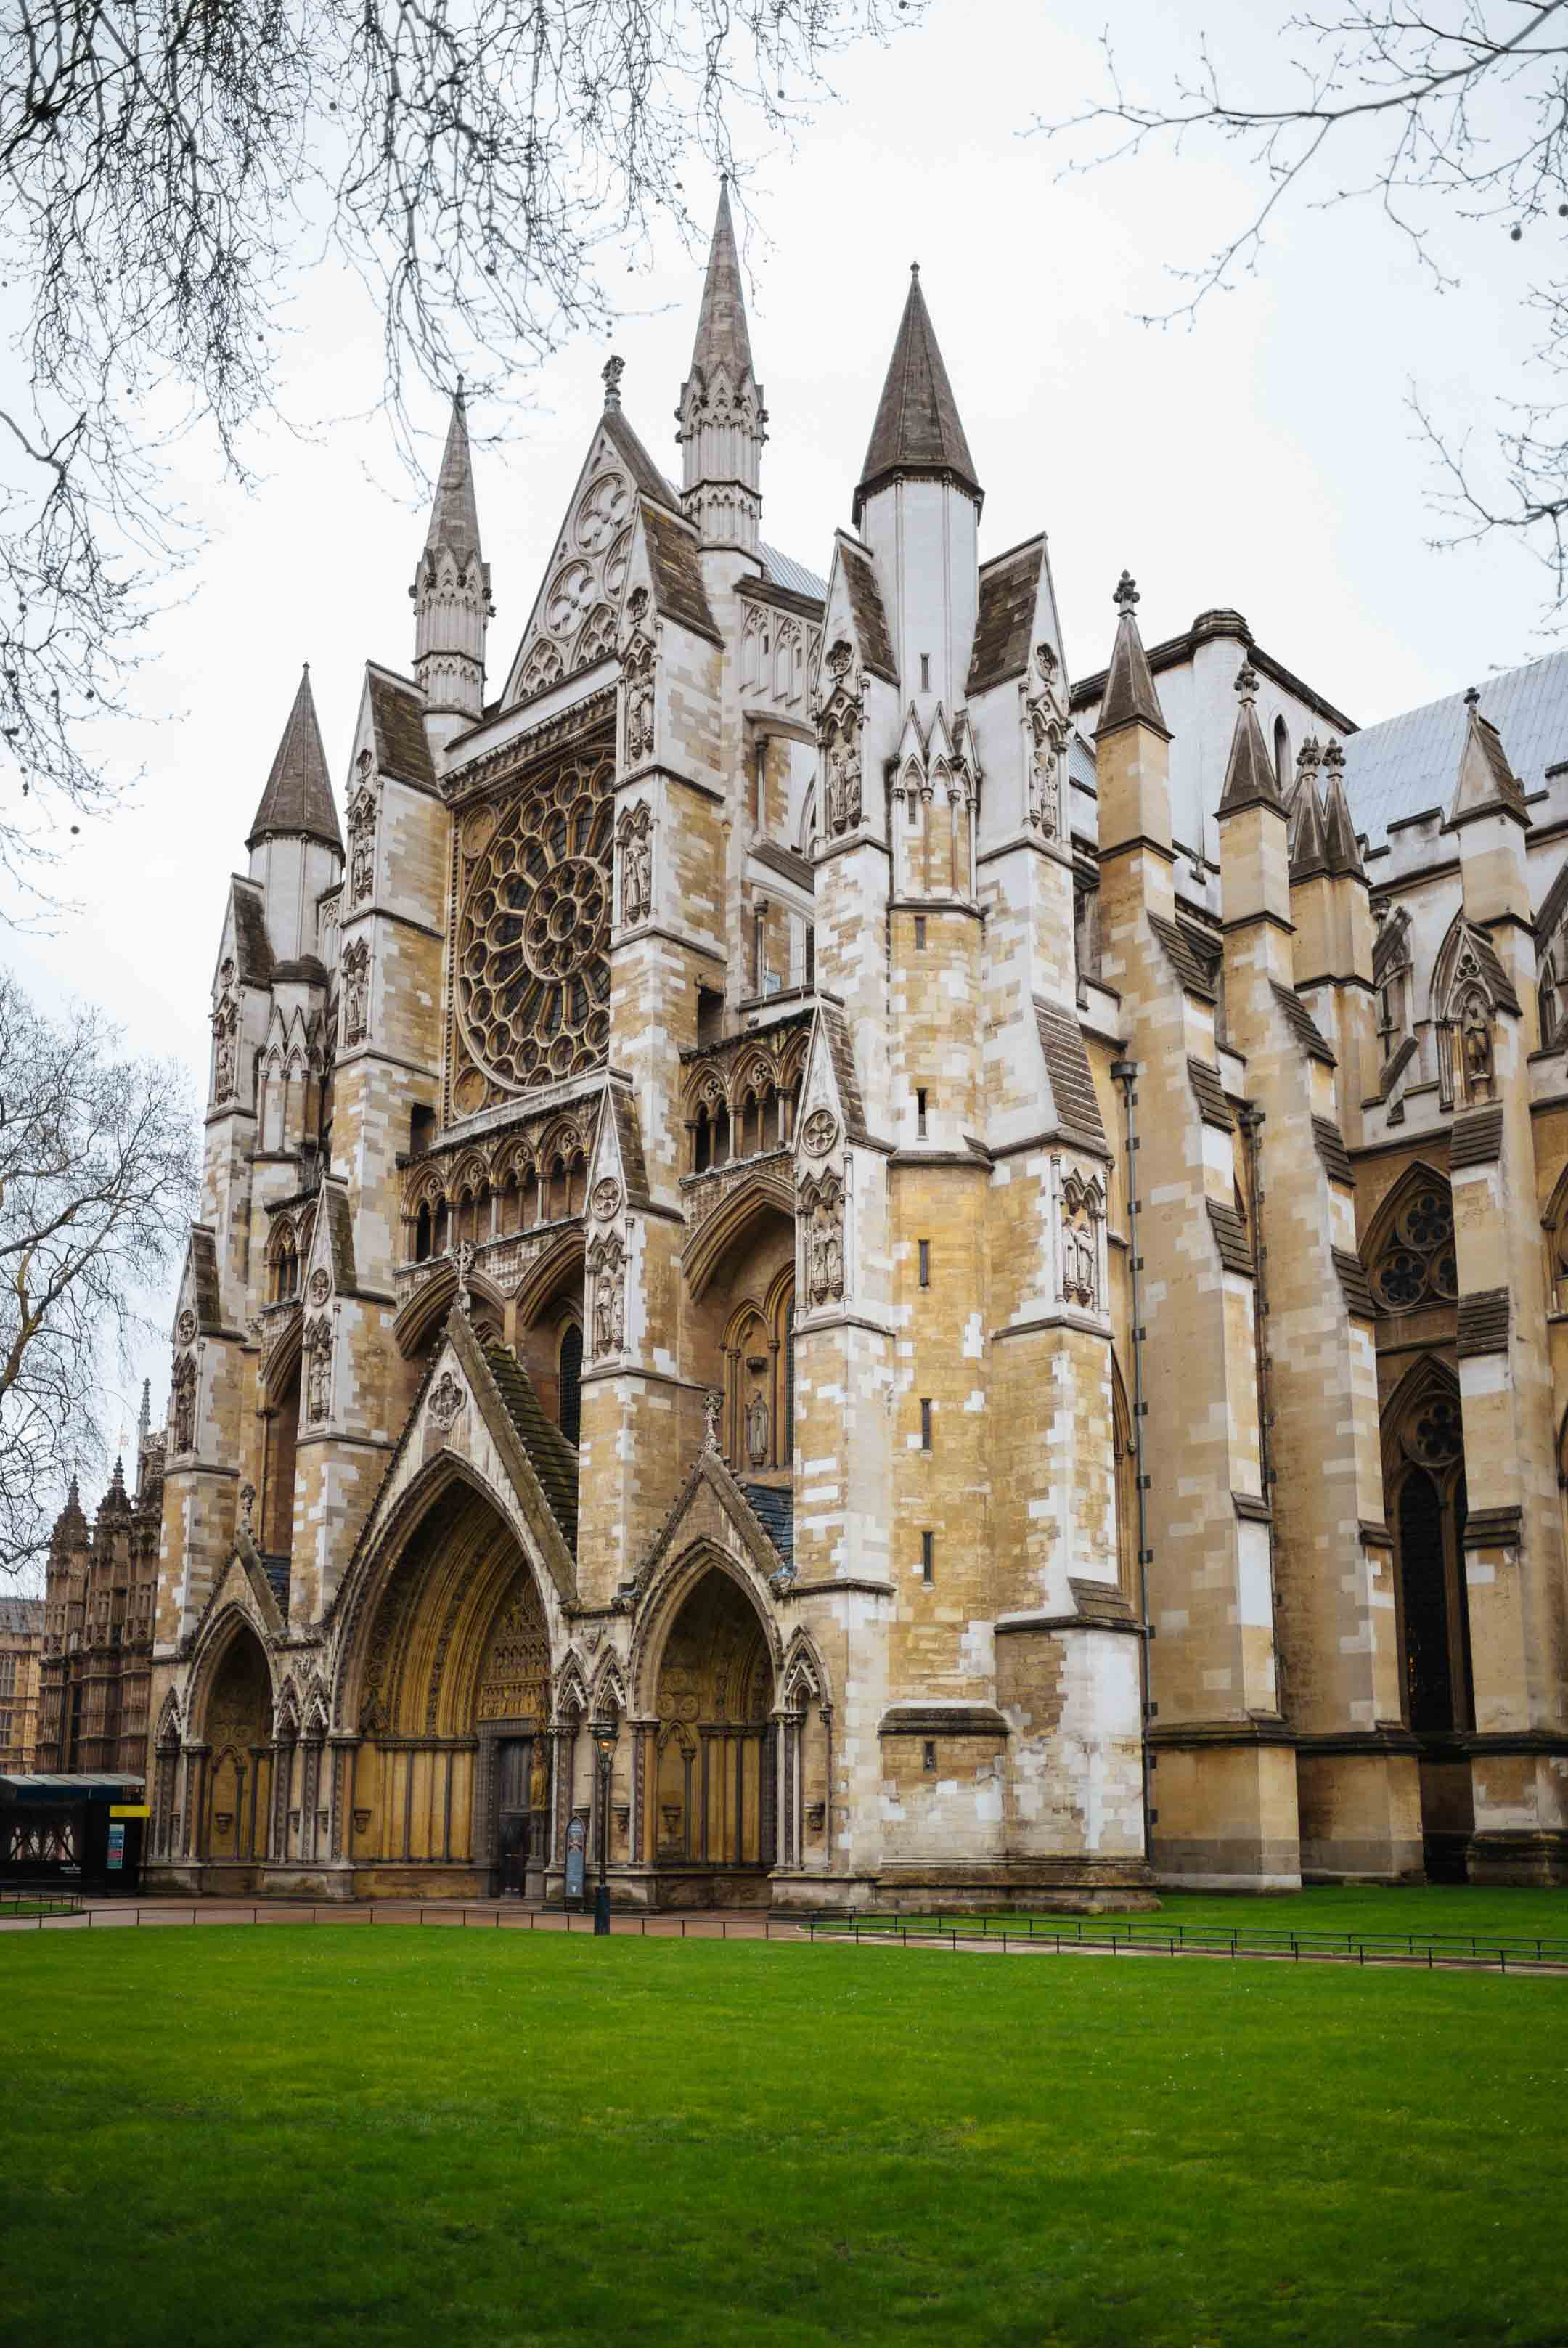 The Taste SF recommends visiting Westminster Abbey when in London